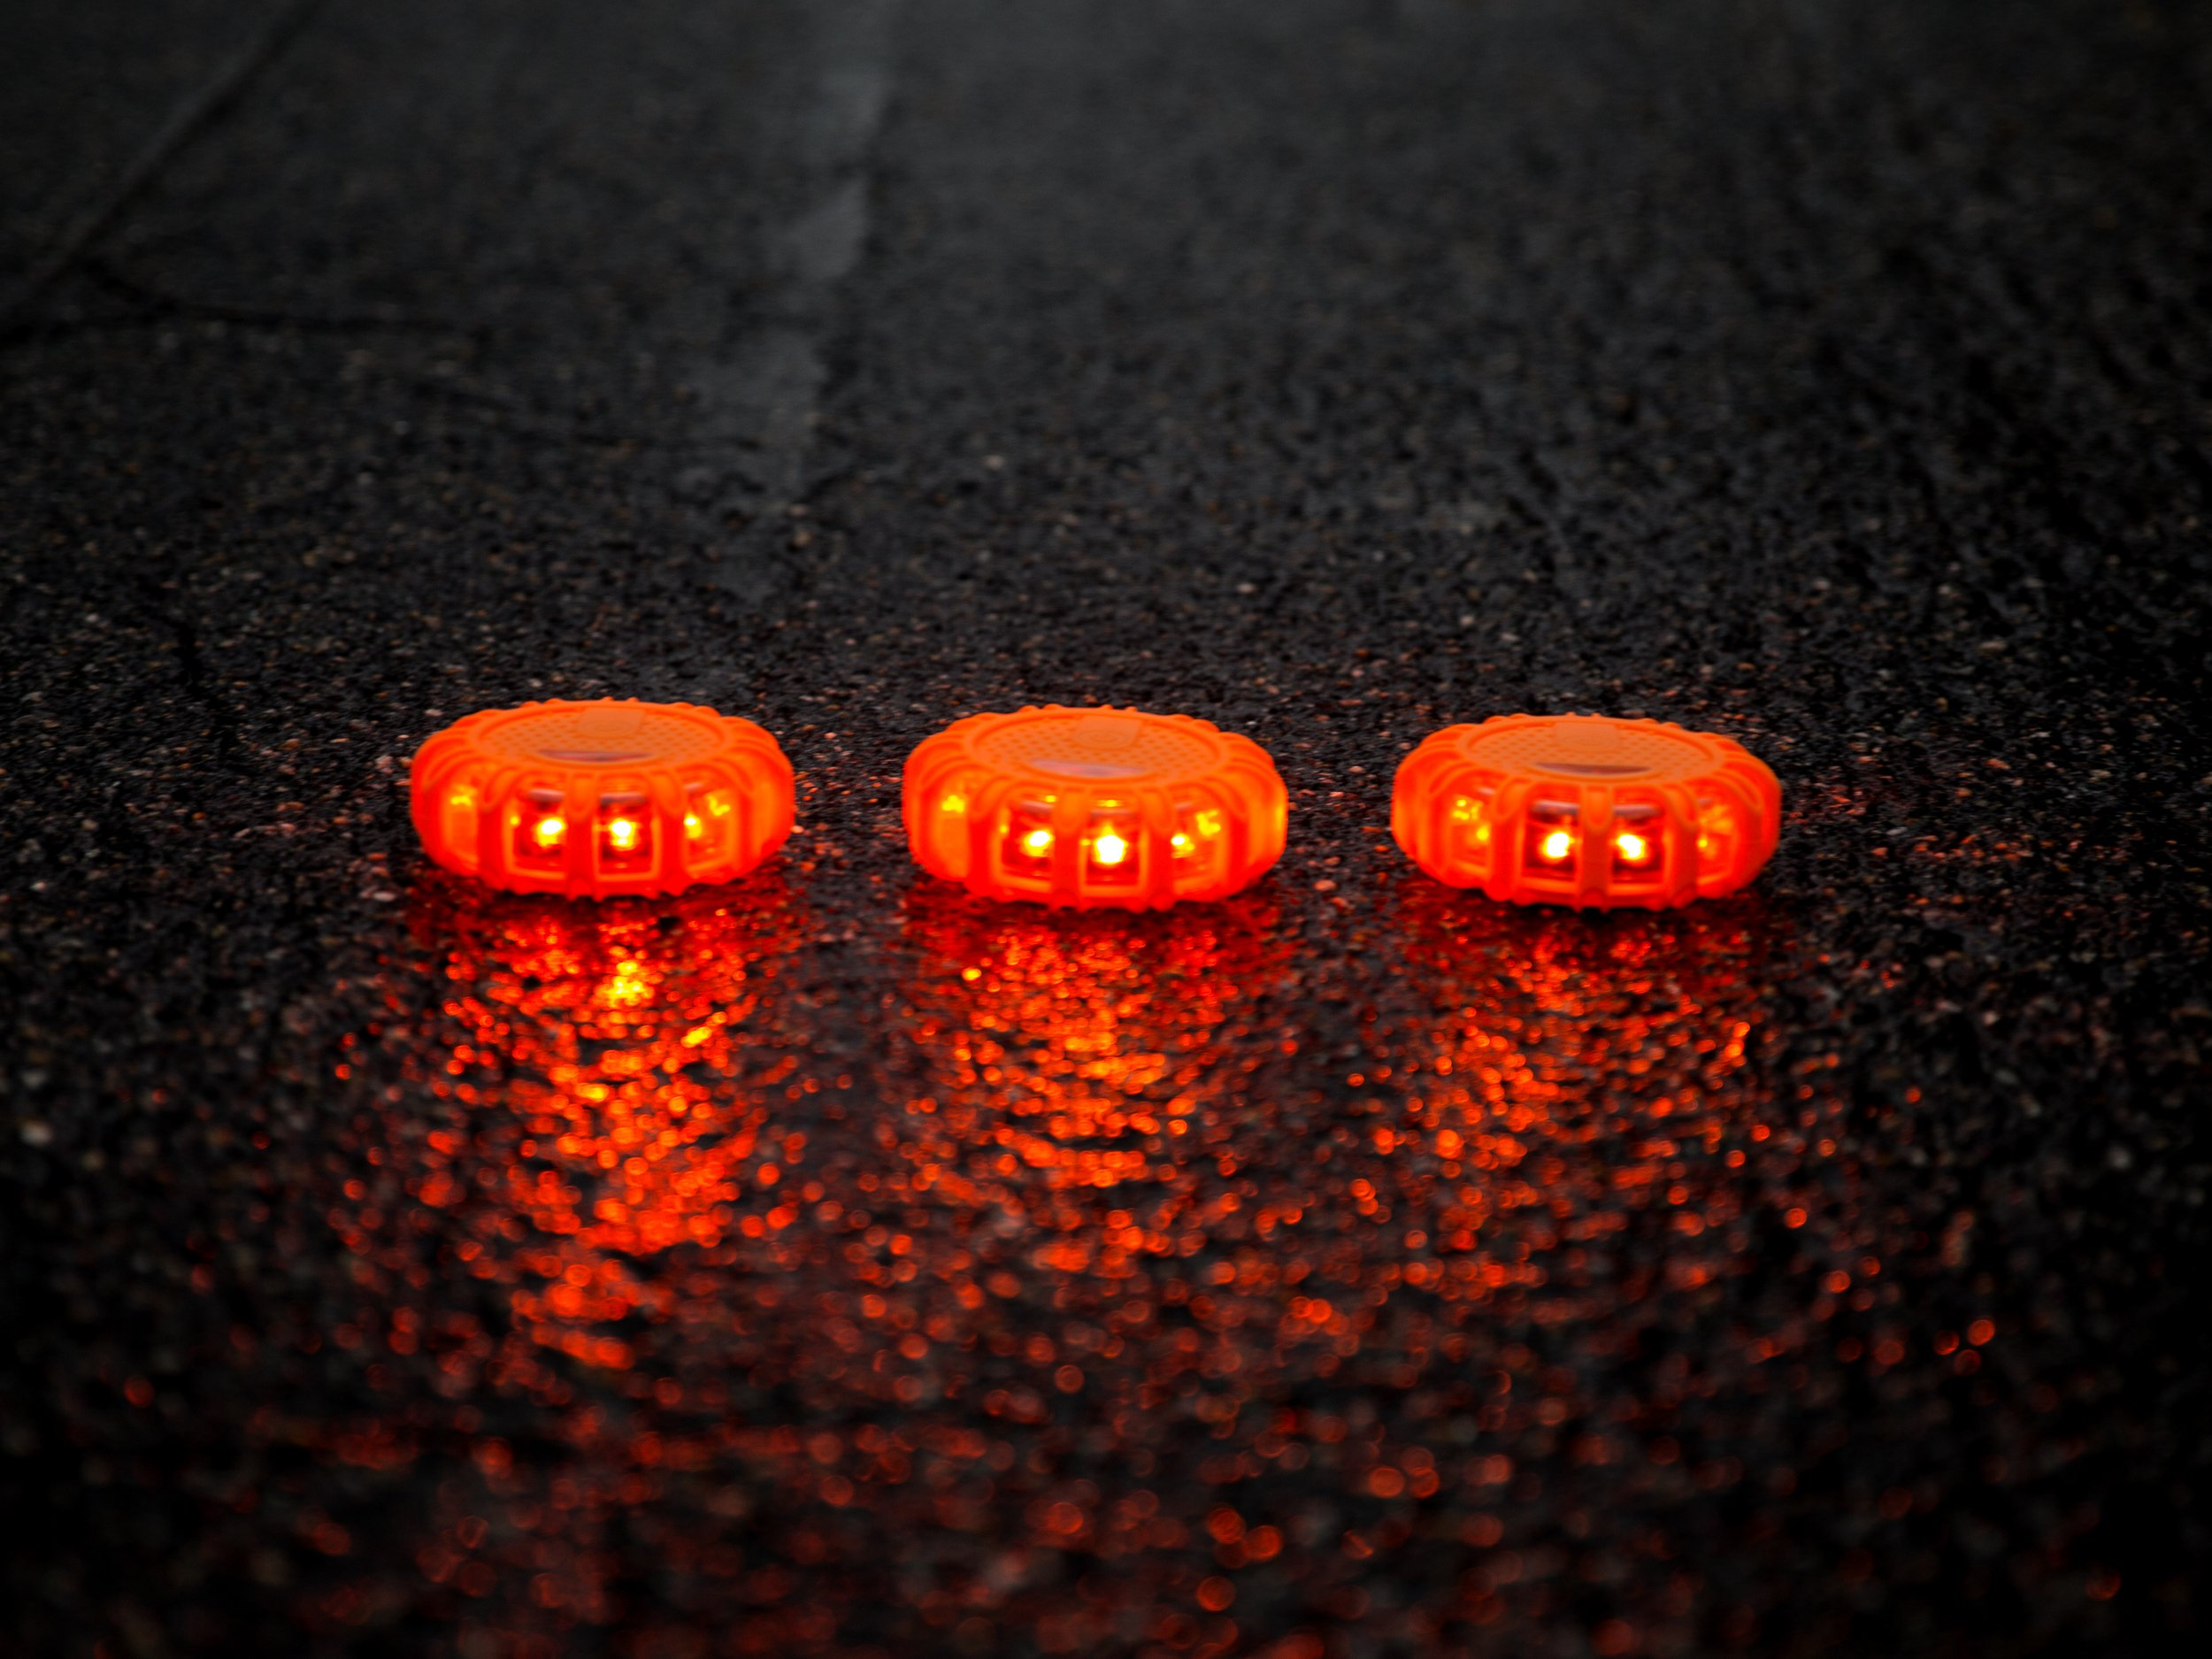 "Flashing LED Emergency Road Flares: 4"" Magnetic Roadside Flare Beacon Discs for Car, Truck or Boat - Warning Lights for Safety During Vehicle Emergencies - Use on All Vehicles - 3 Pack with Carry Ba"